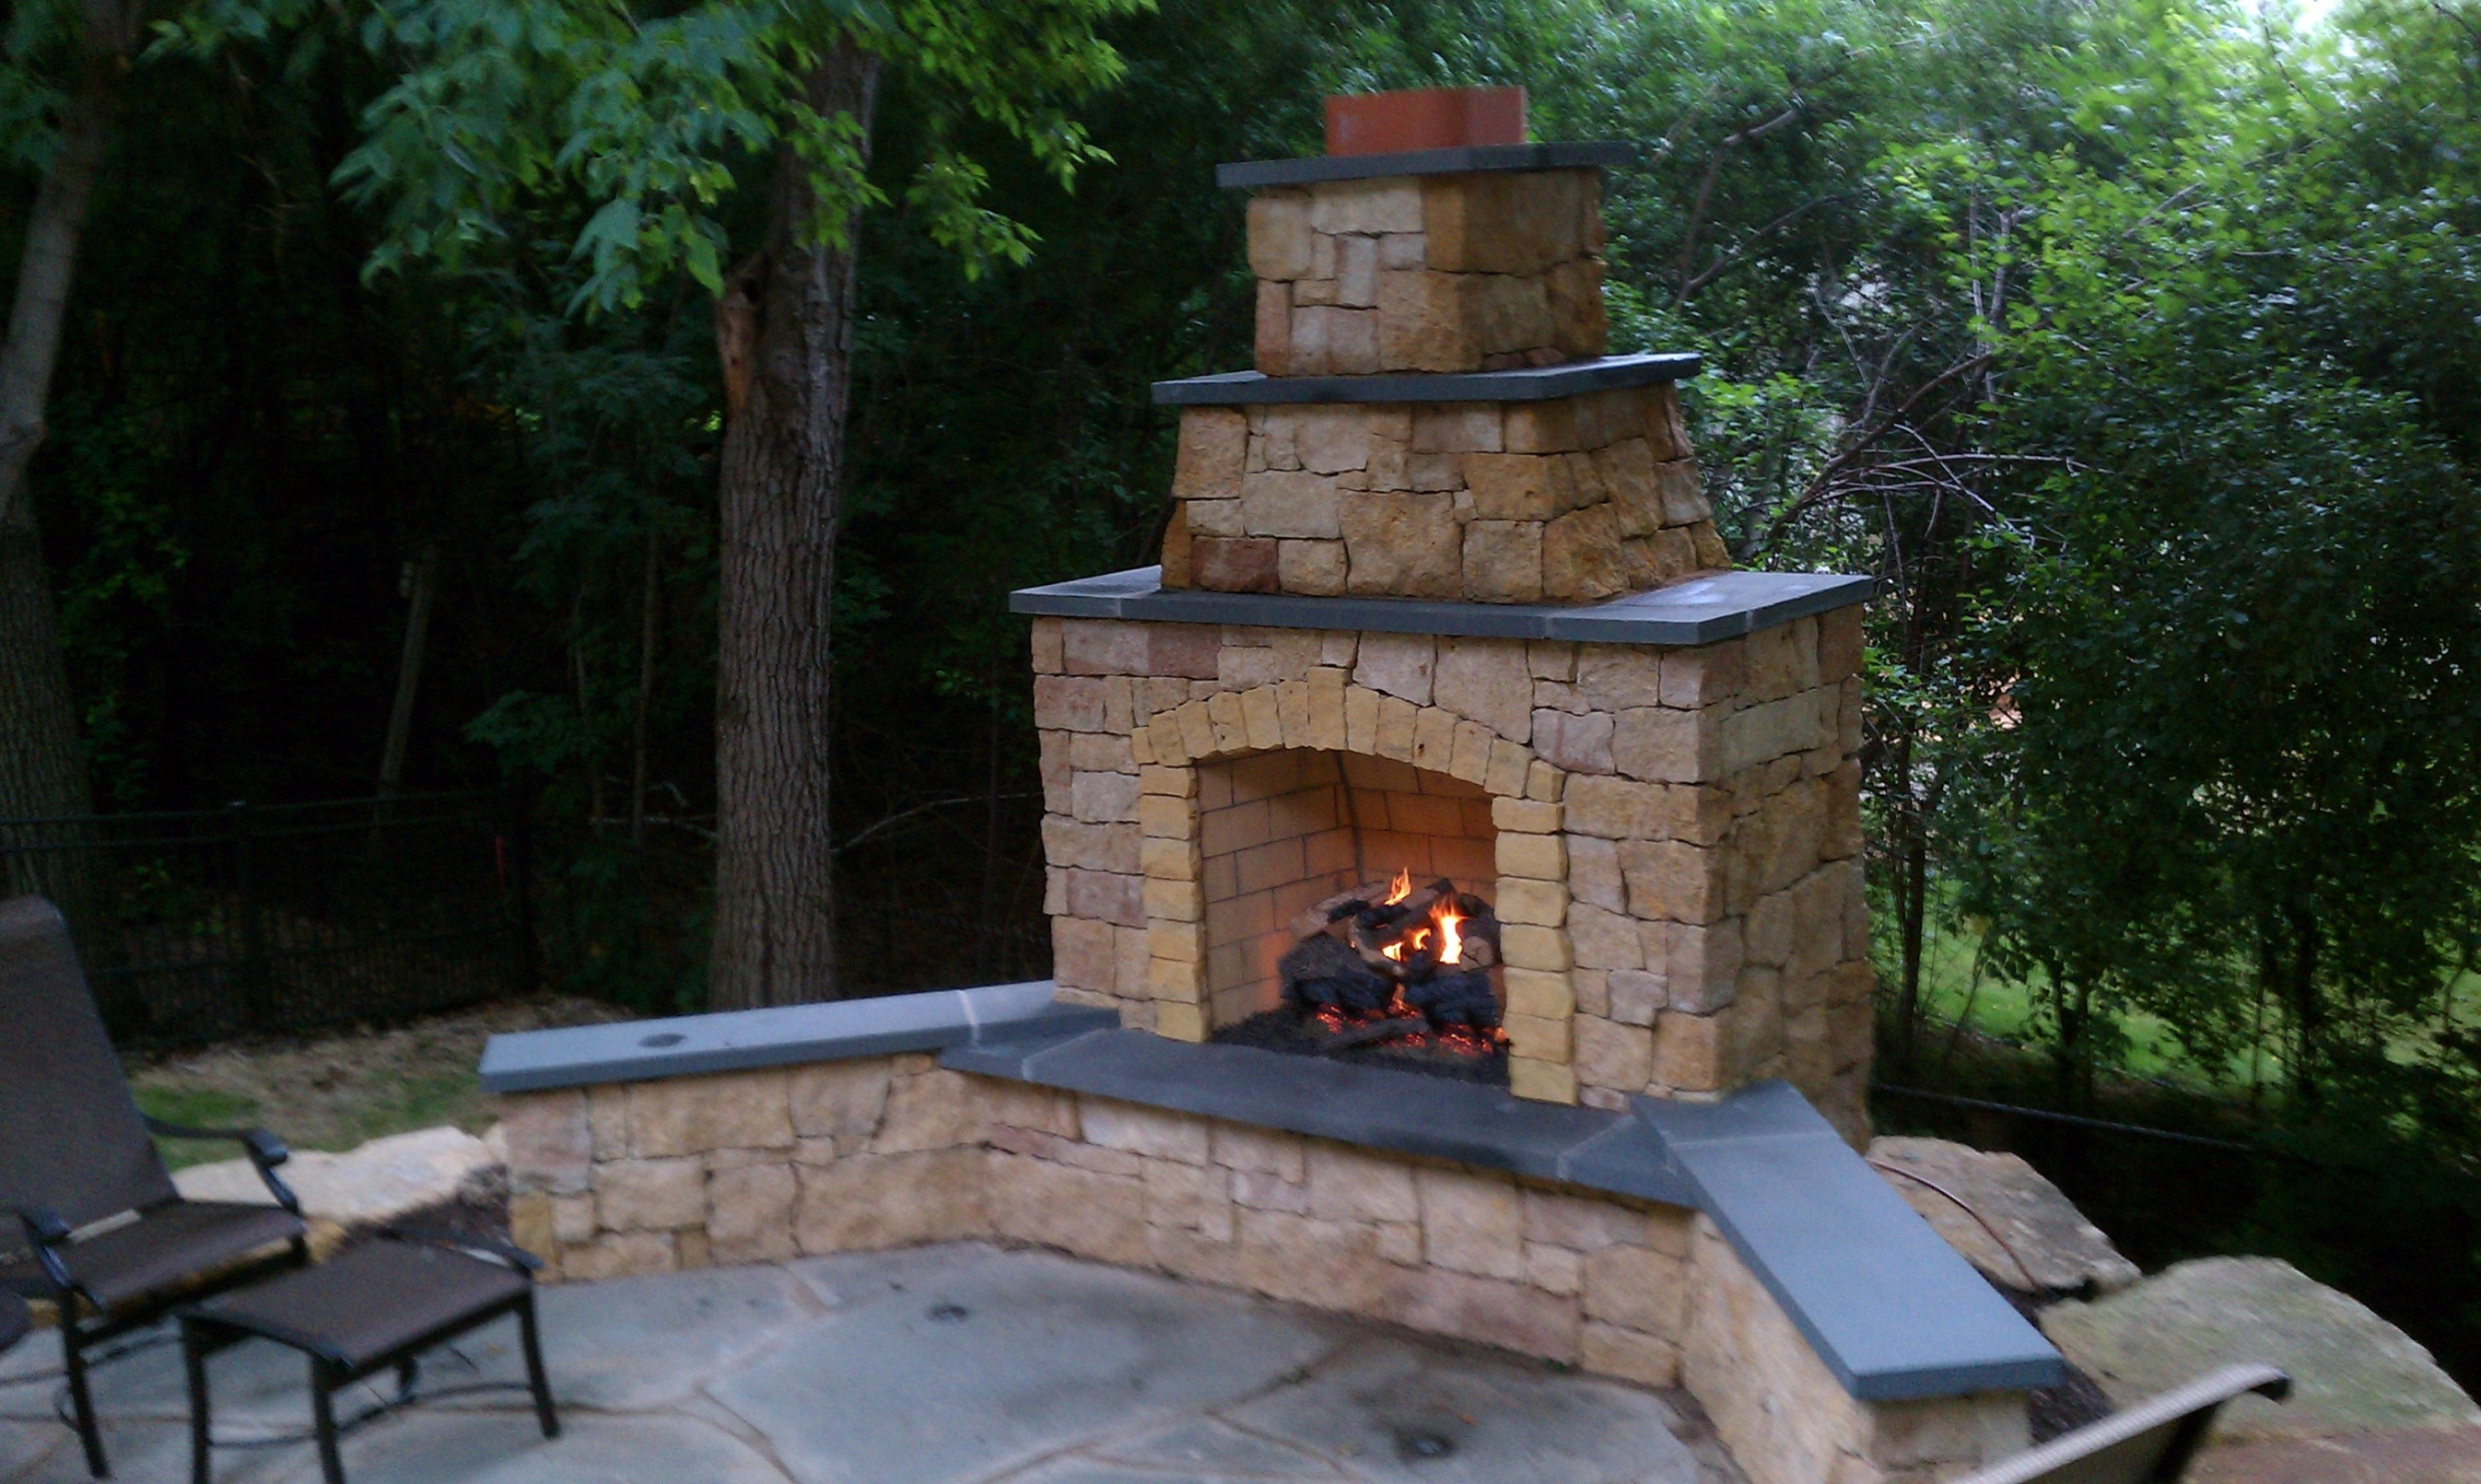 Outdoor Fireplace Chimney With Outdoor Fireplace Flue Cleaning Guide